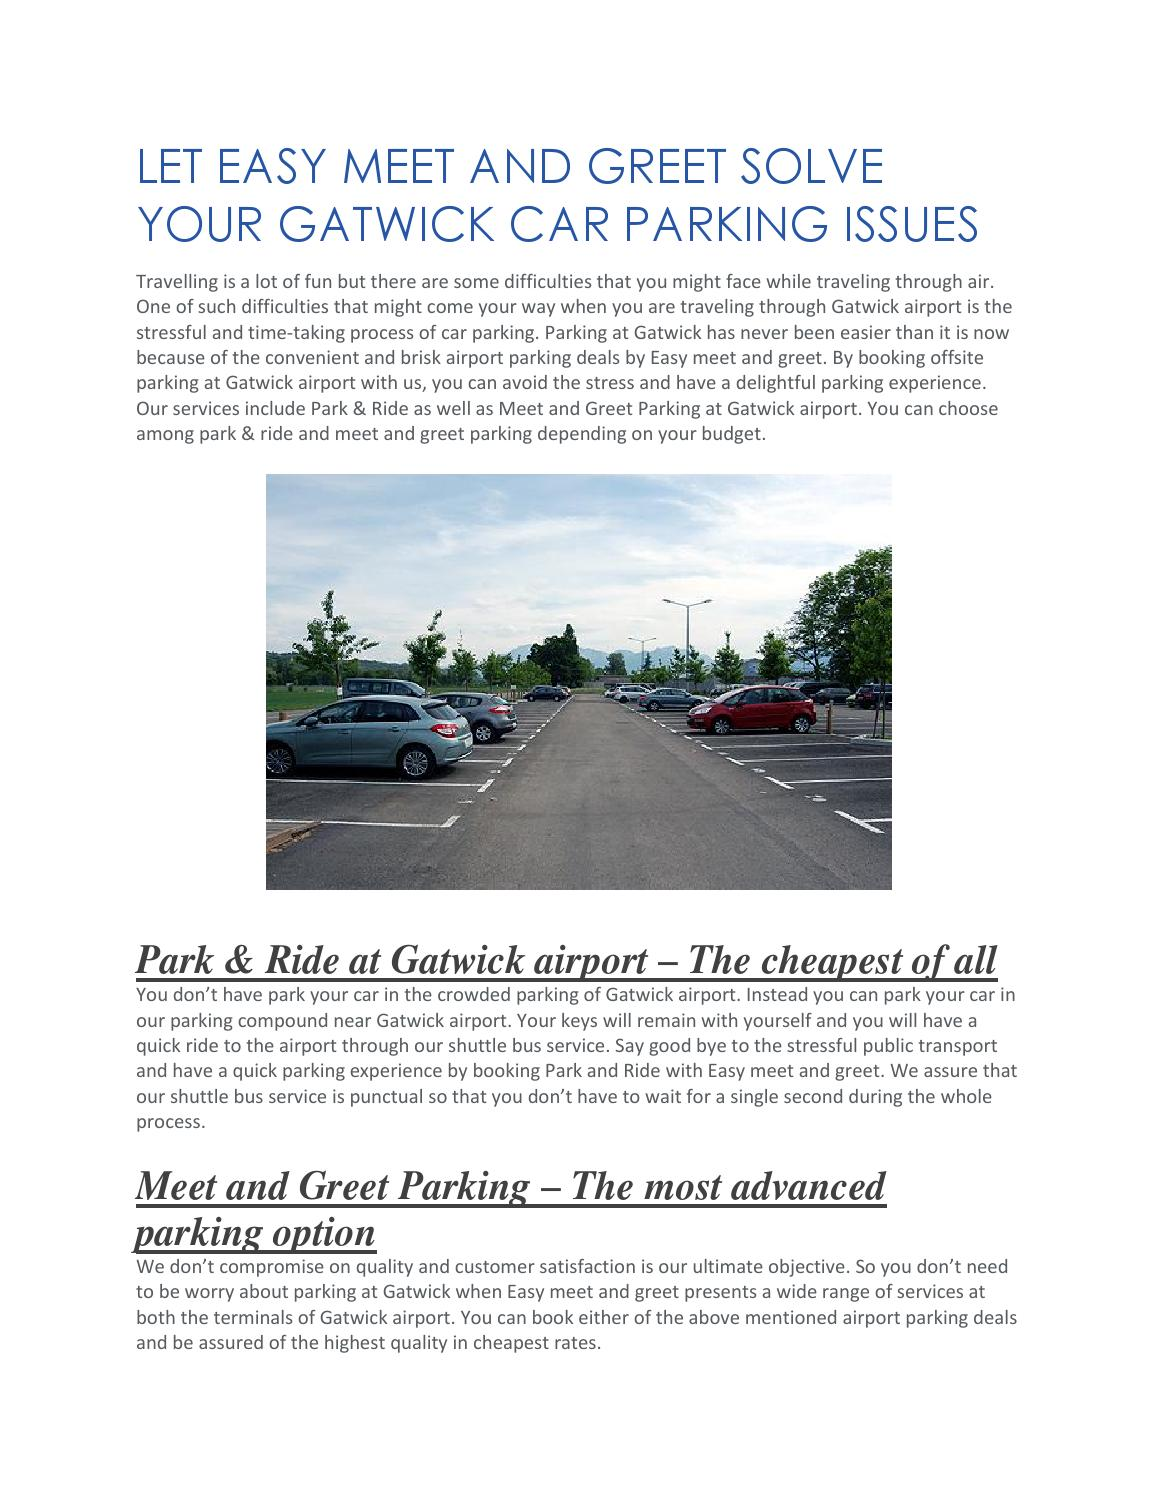 Let Easy Meet And Greet Solve Your Gatwick Car Parking Issue By